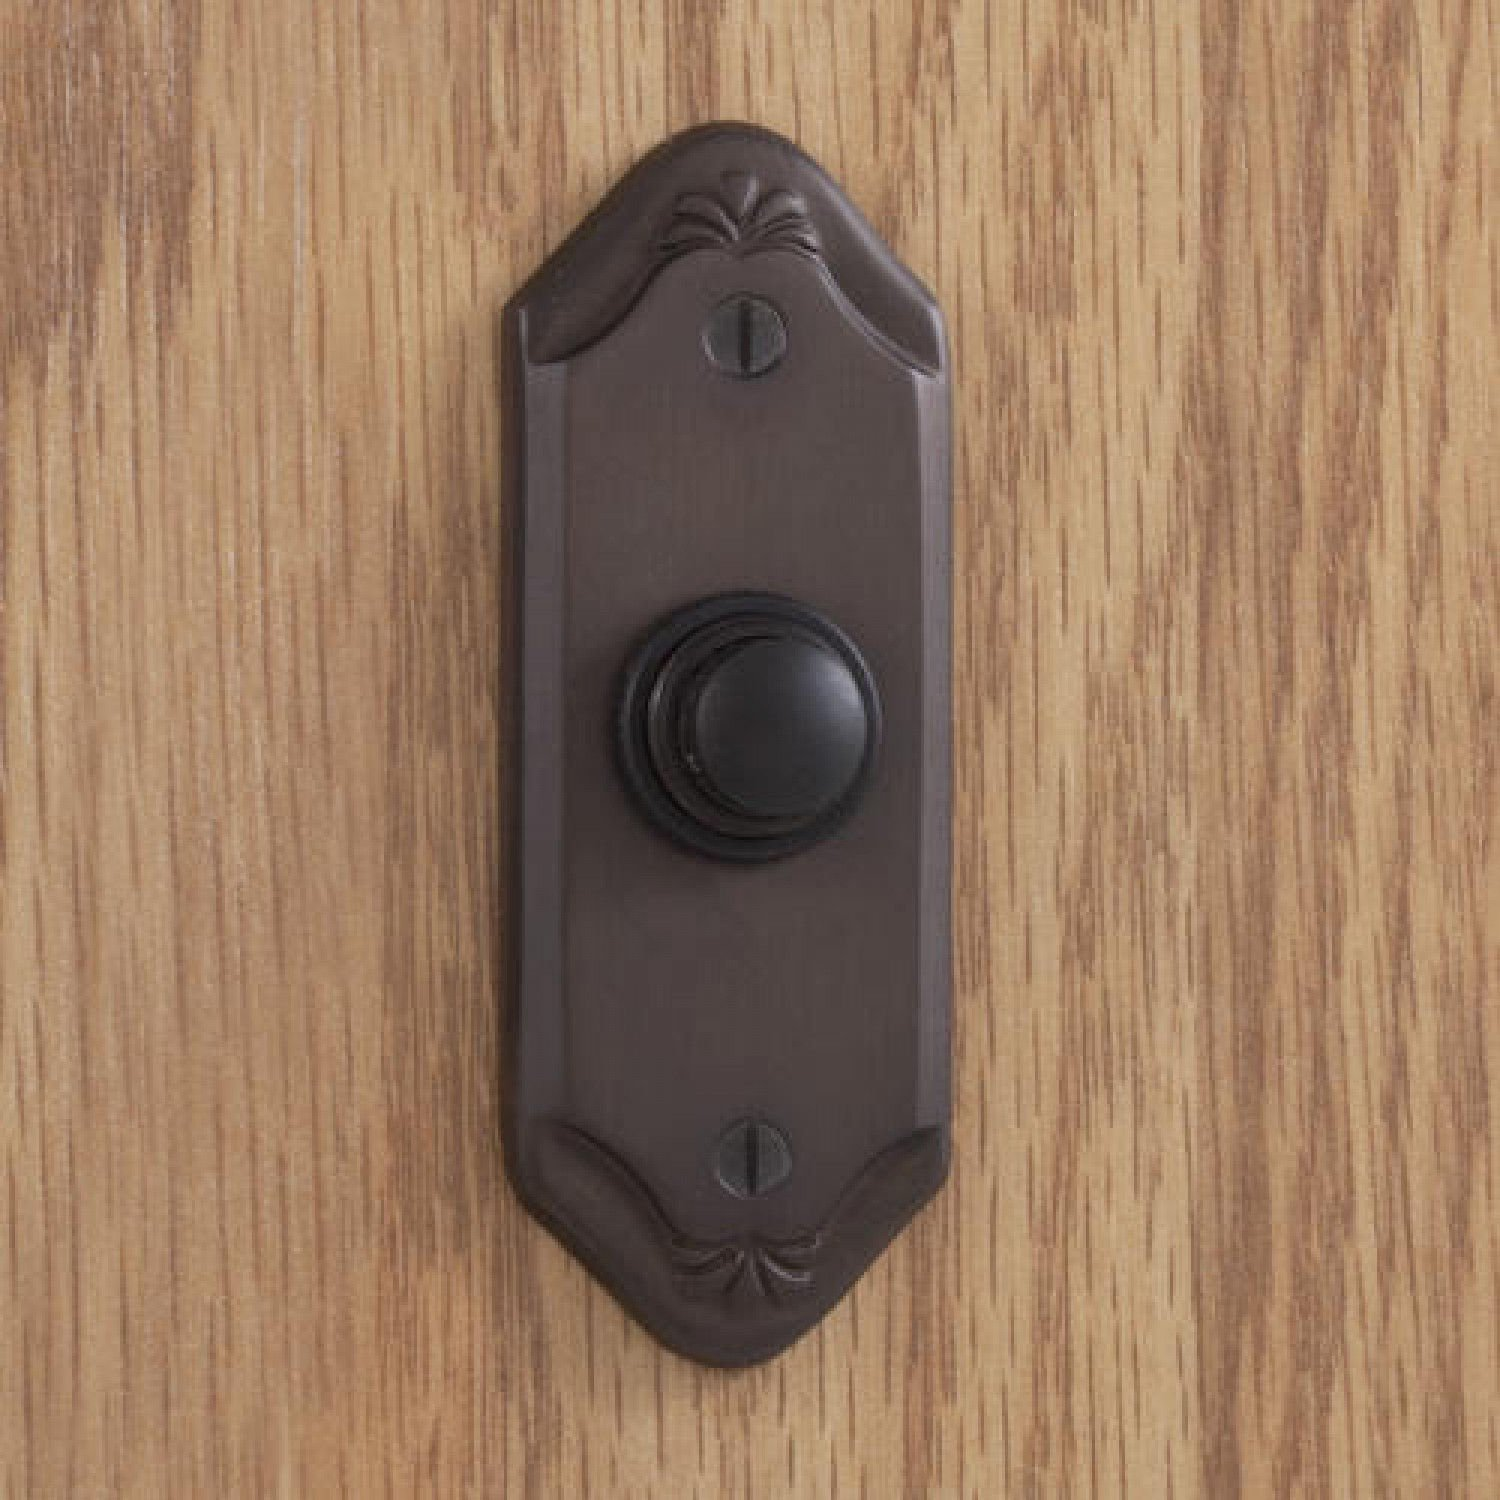 Casa Hardware Sprig Design Solid Forged Brass Metal Doorbell with Push Button in Oil Rubbed Bronze Finish